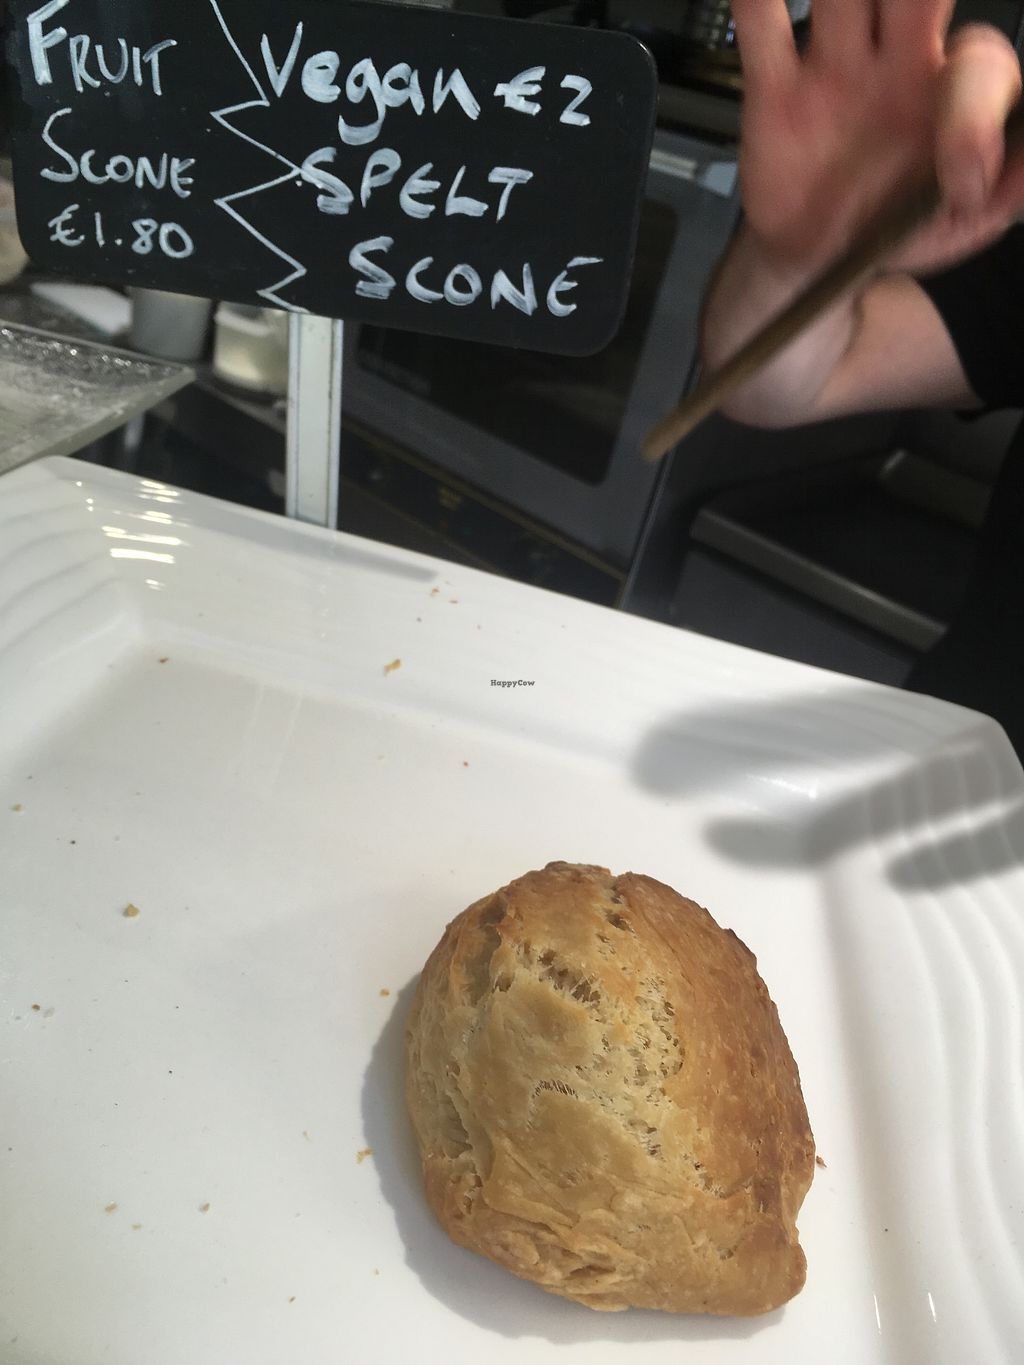 """Photo of Cafe Temple  by <a href=""""/members/profile/phashonkat"""">phashonkat</a> <br/>Vegan scone & coffee/tea for under 4 euro! <br/> July 25, 2017  - <a href='/contact/abuse/image/77378/284574'>Report</a>"""